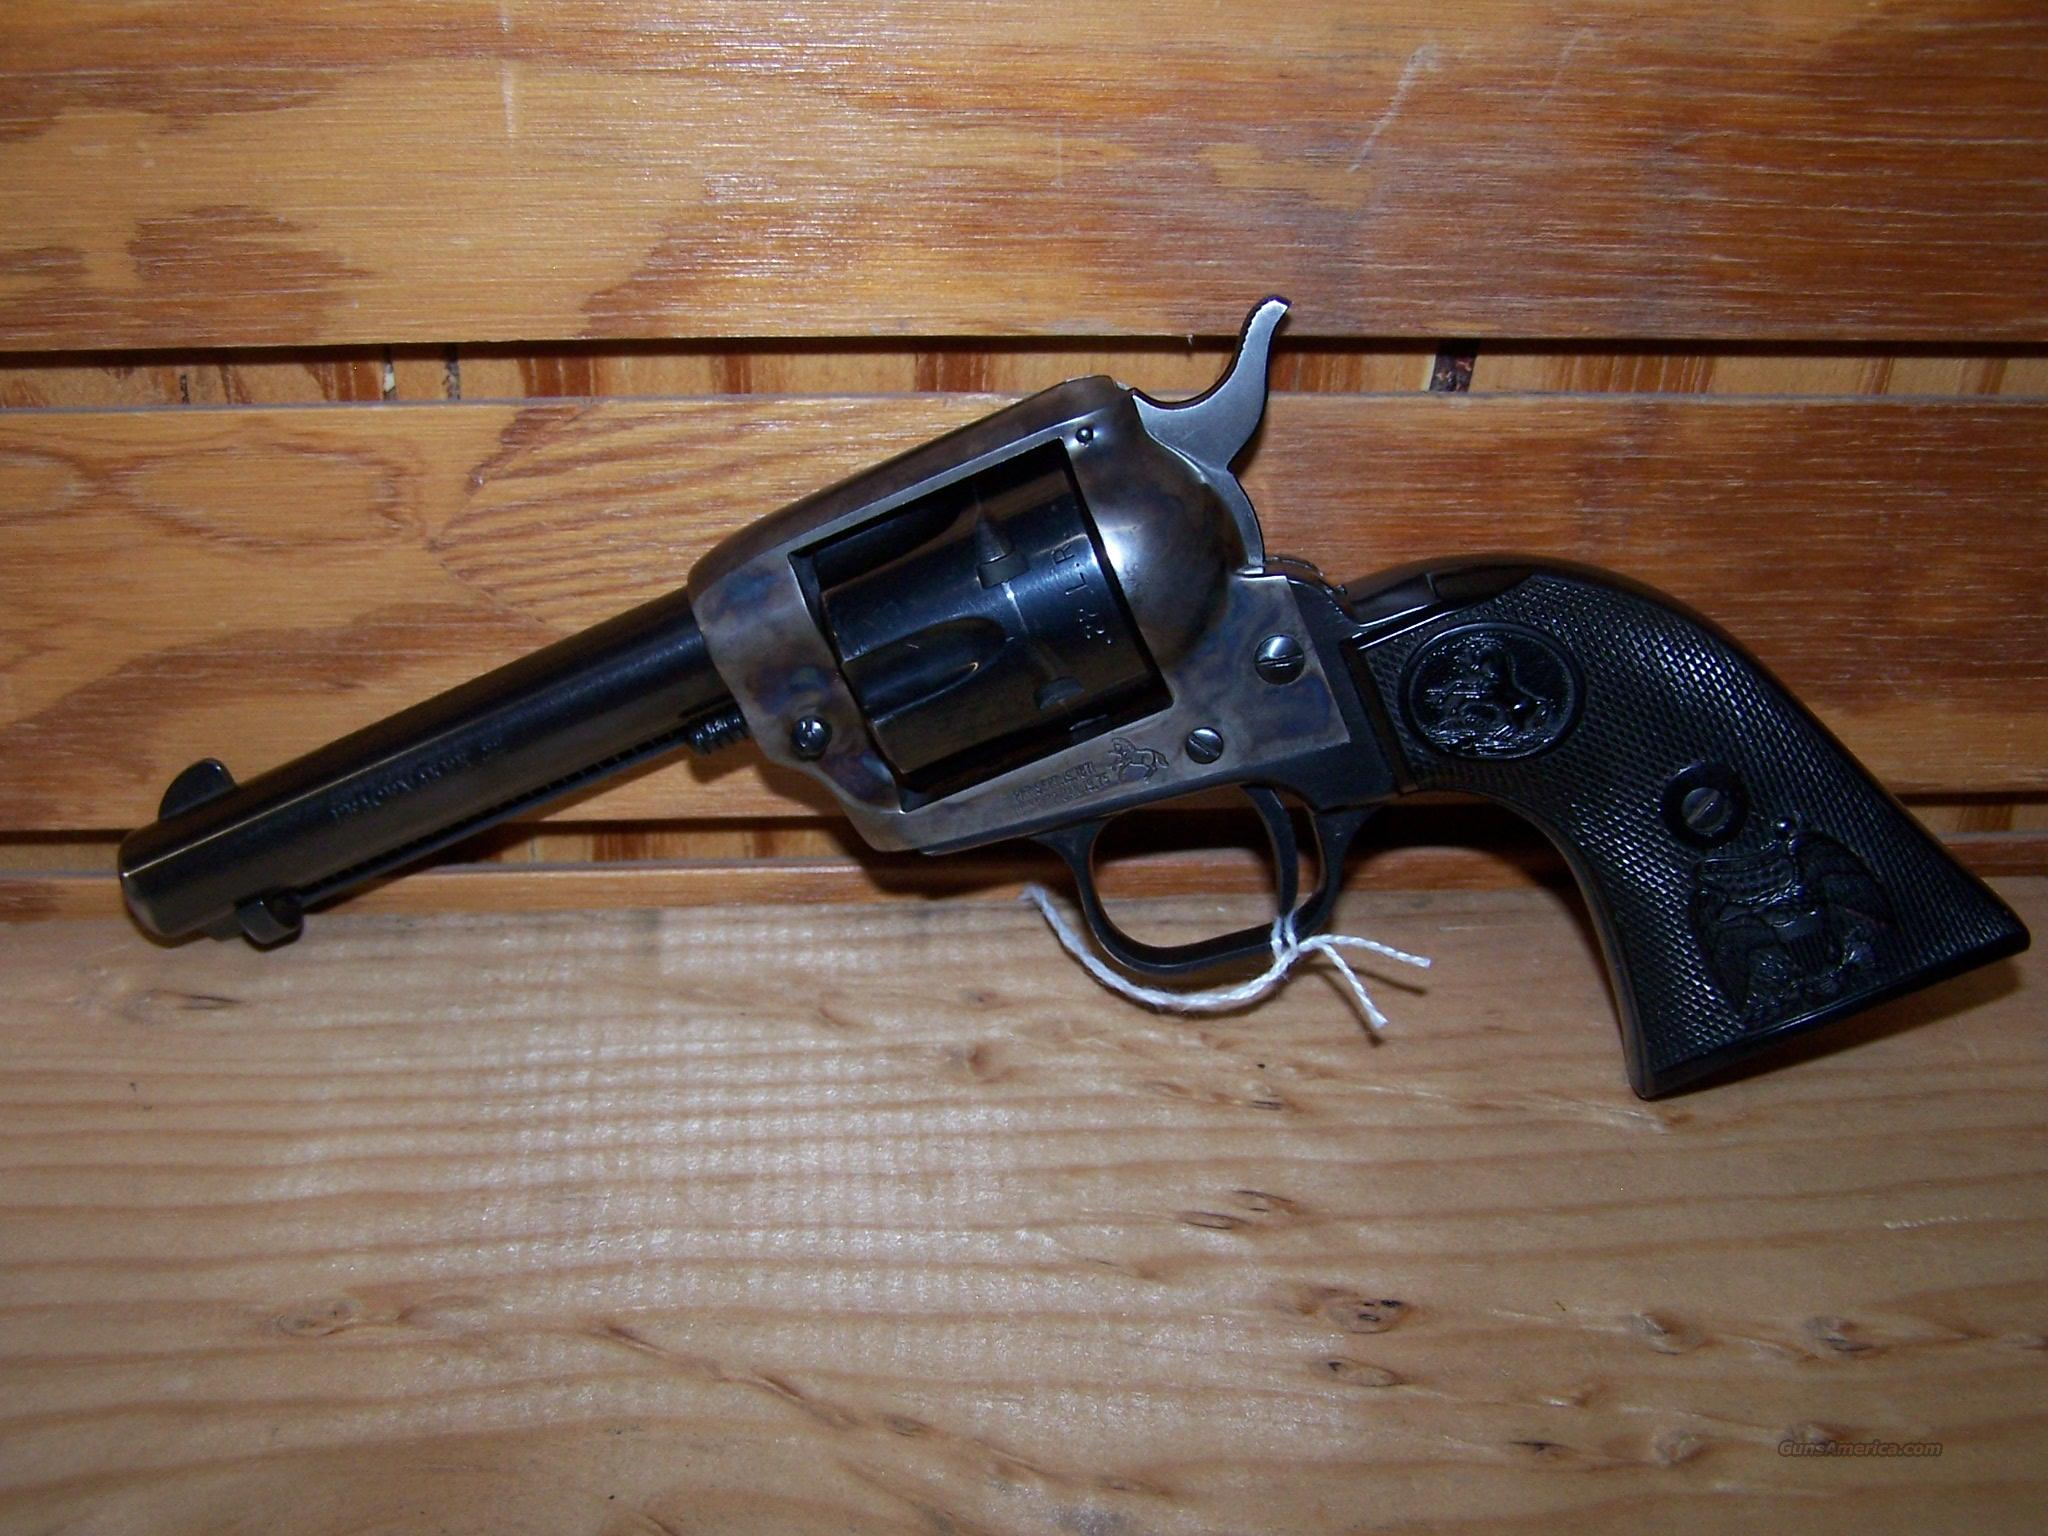 COLT PEACEMAKER 22 LR  Guns > Pistols > Colt Single Action Revolvers - Modern (22 Cal.)